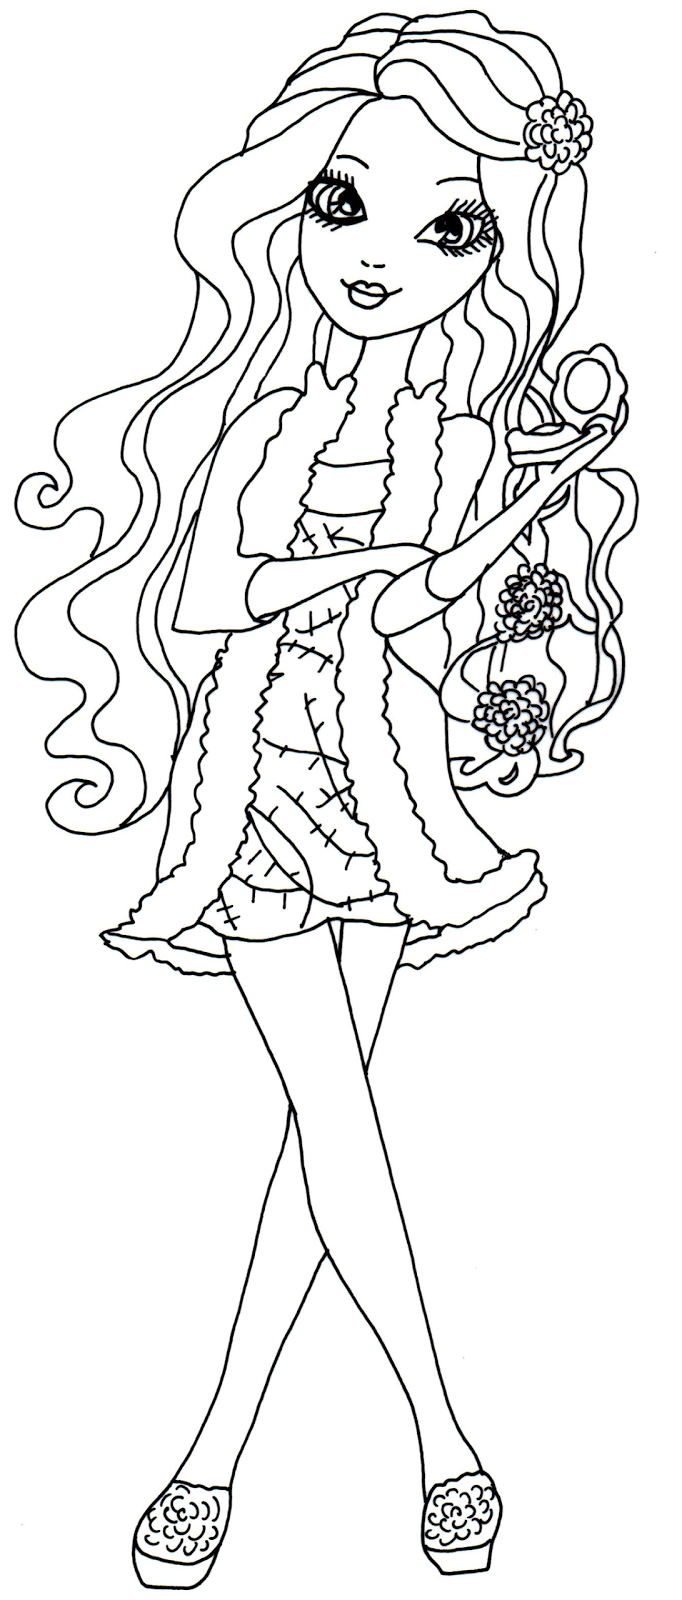 Free Printable Ever After High Coloring Pages: Briar Beauty ...